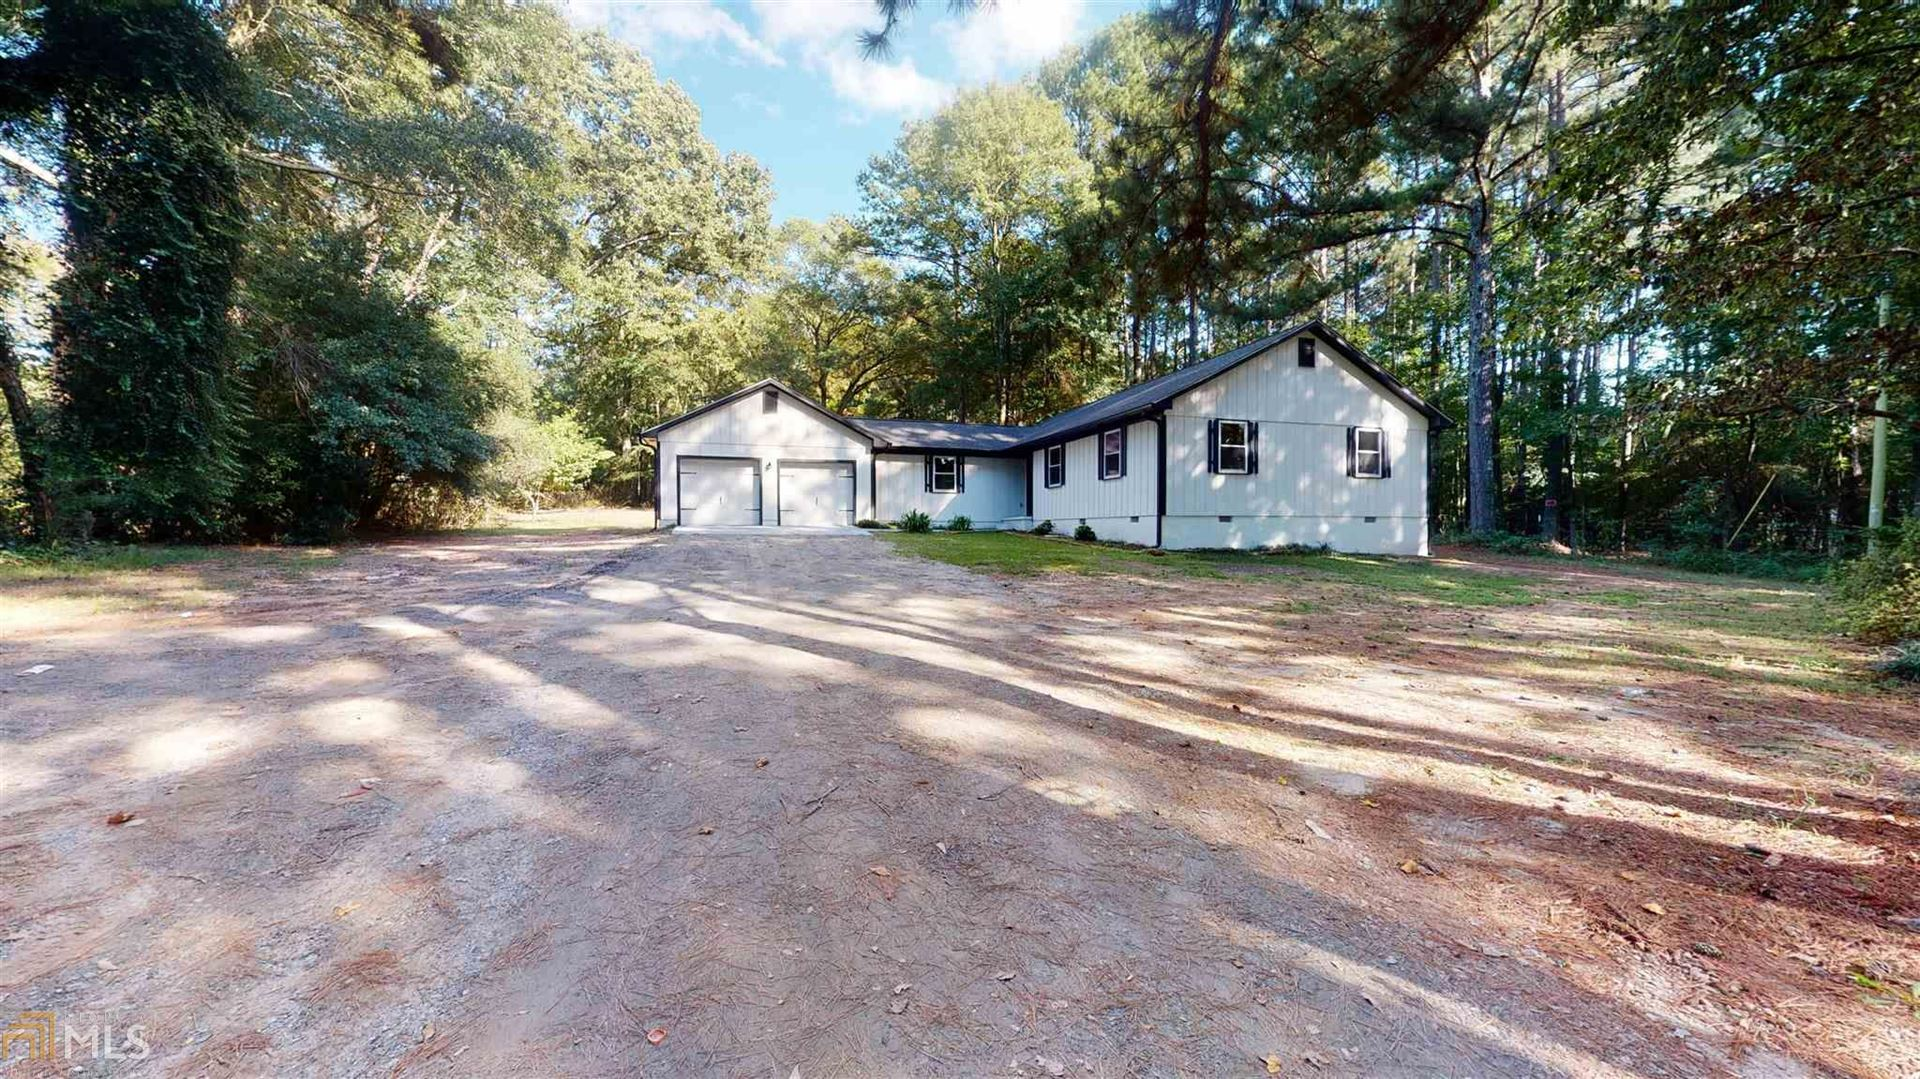 1177 Bob Smith Rd, Sharpsburg, GA 30277 - MLS#: 8864887